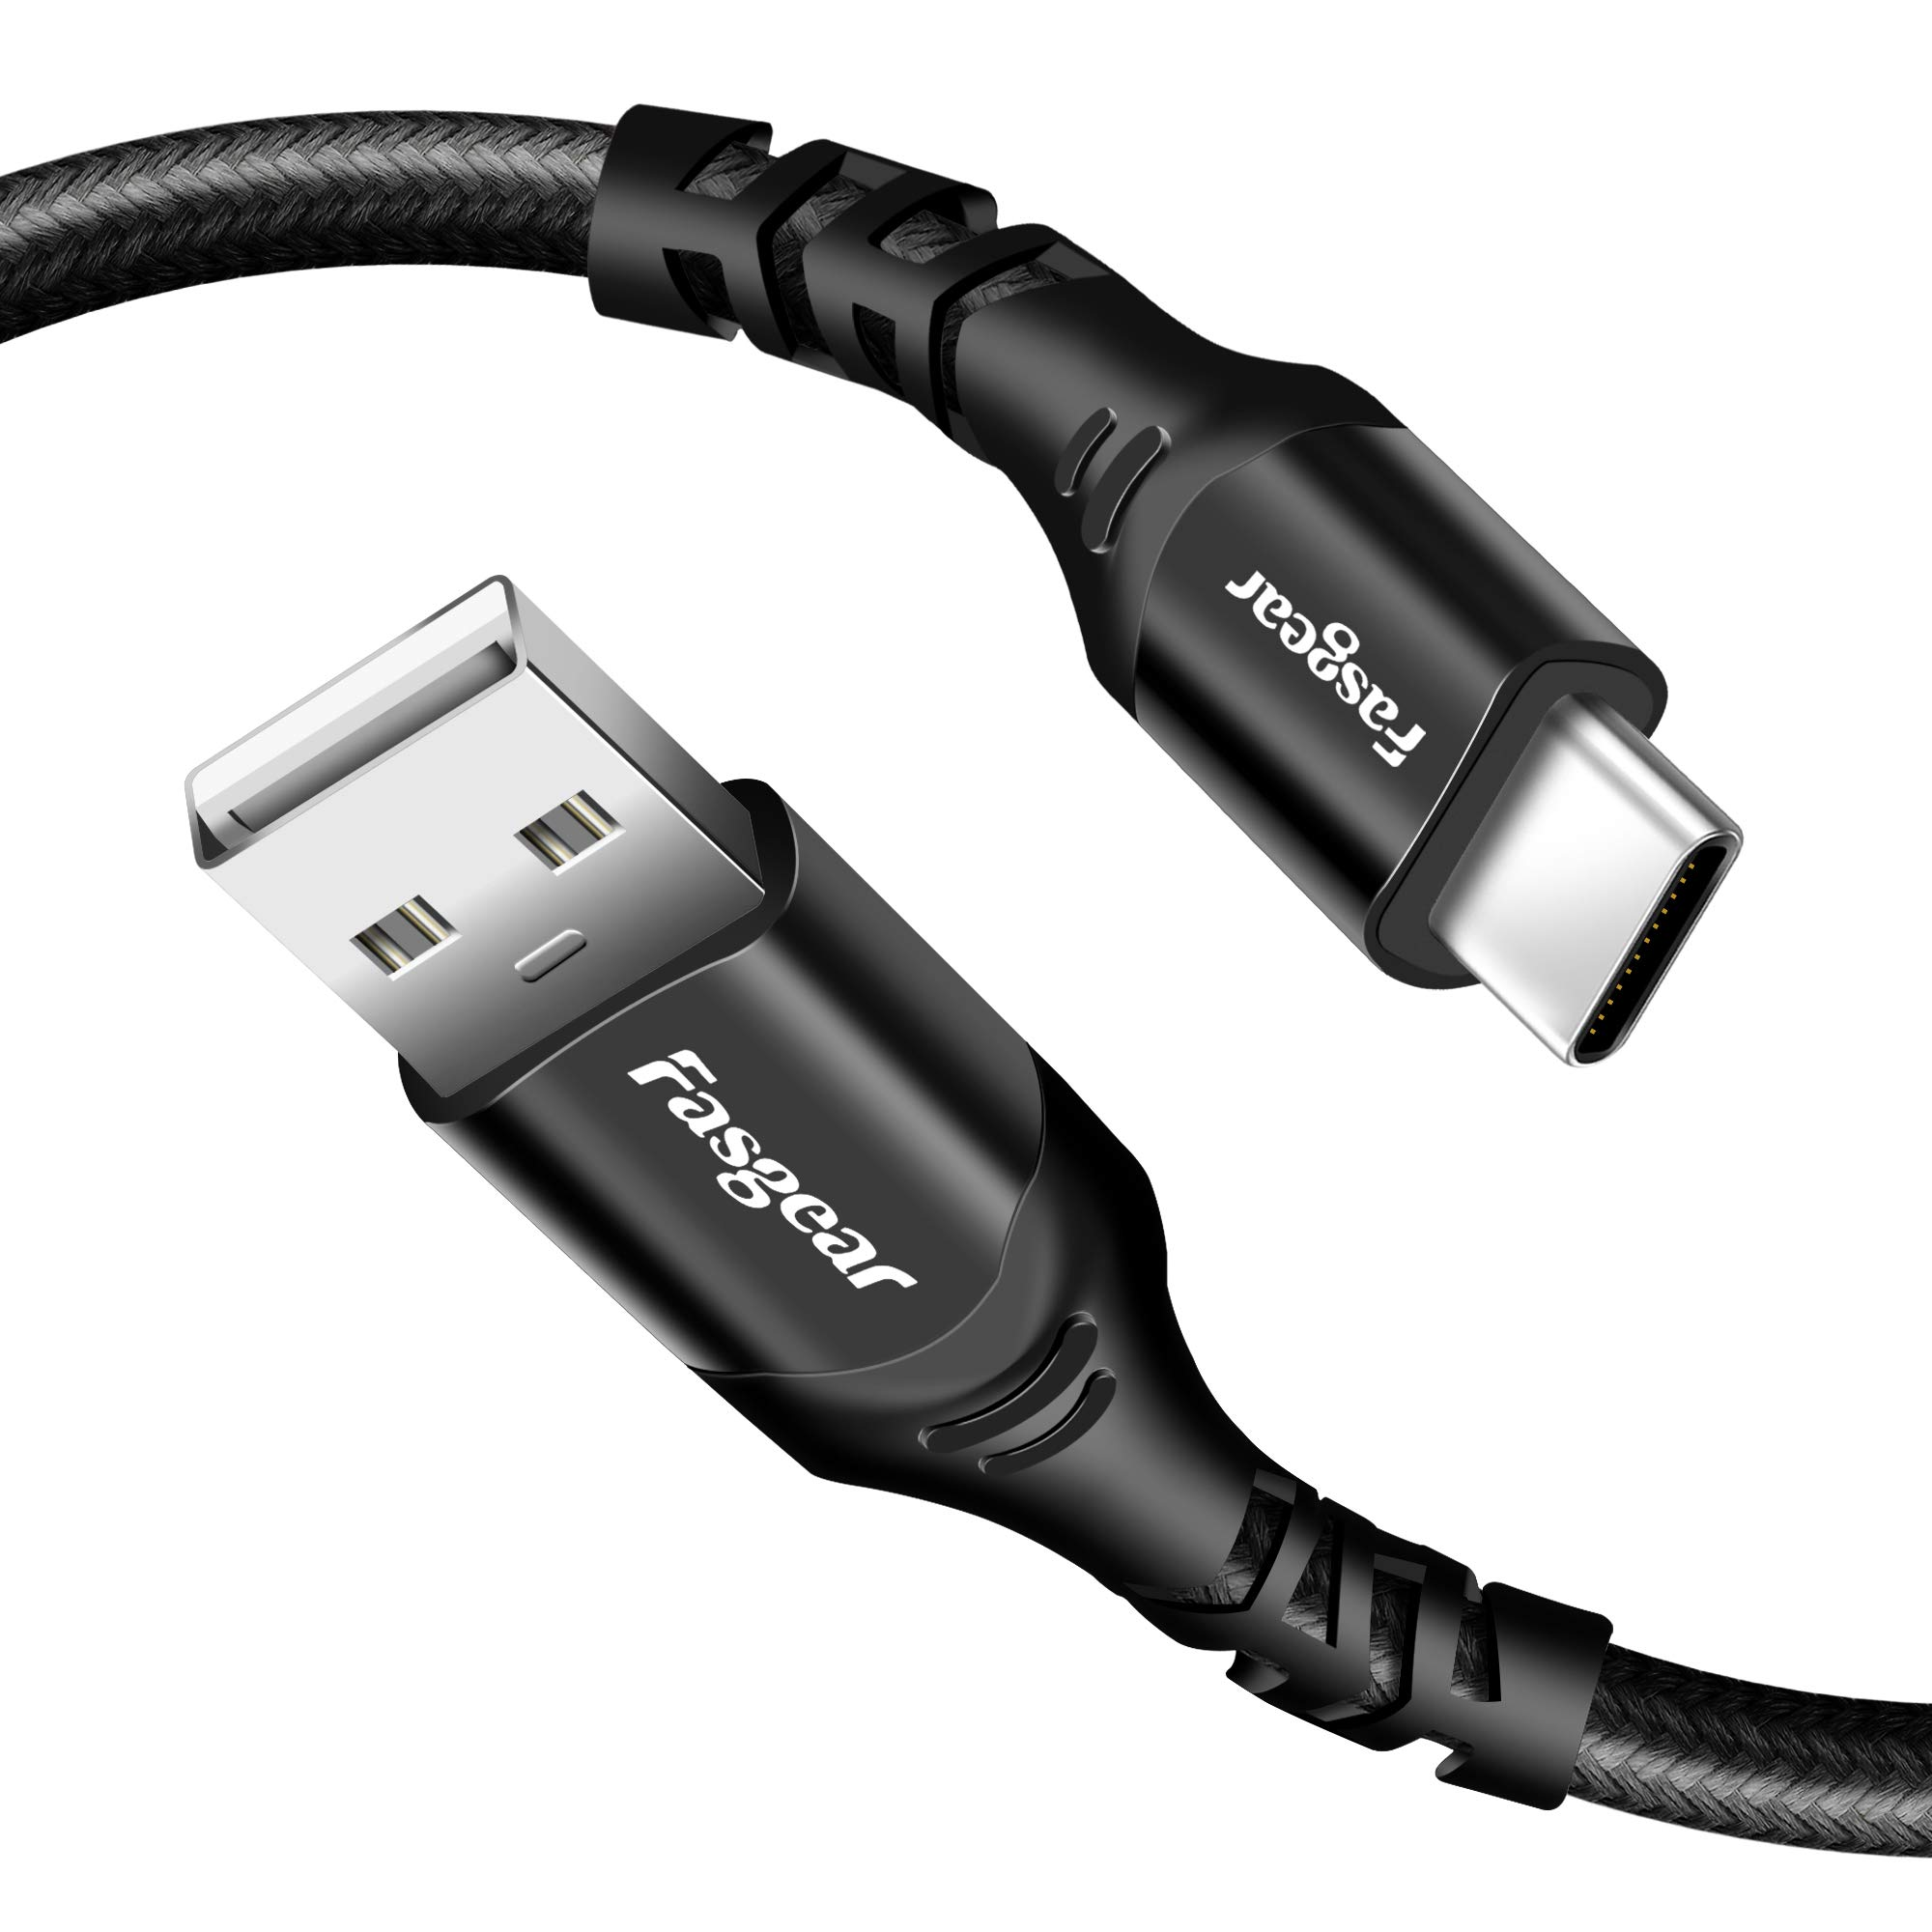 Fasgear USB-C to USB 2.0 Cable, 1 Pack 6ft USB Type C Nylon Braided USB C Fast Charging Cable Compatible with Moto G6 G7 Galaxy S10 S9 S8 A3 A5 Oneplus 7 7pro Sony Xperia L1 XA2 Huawei P30 (Black)